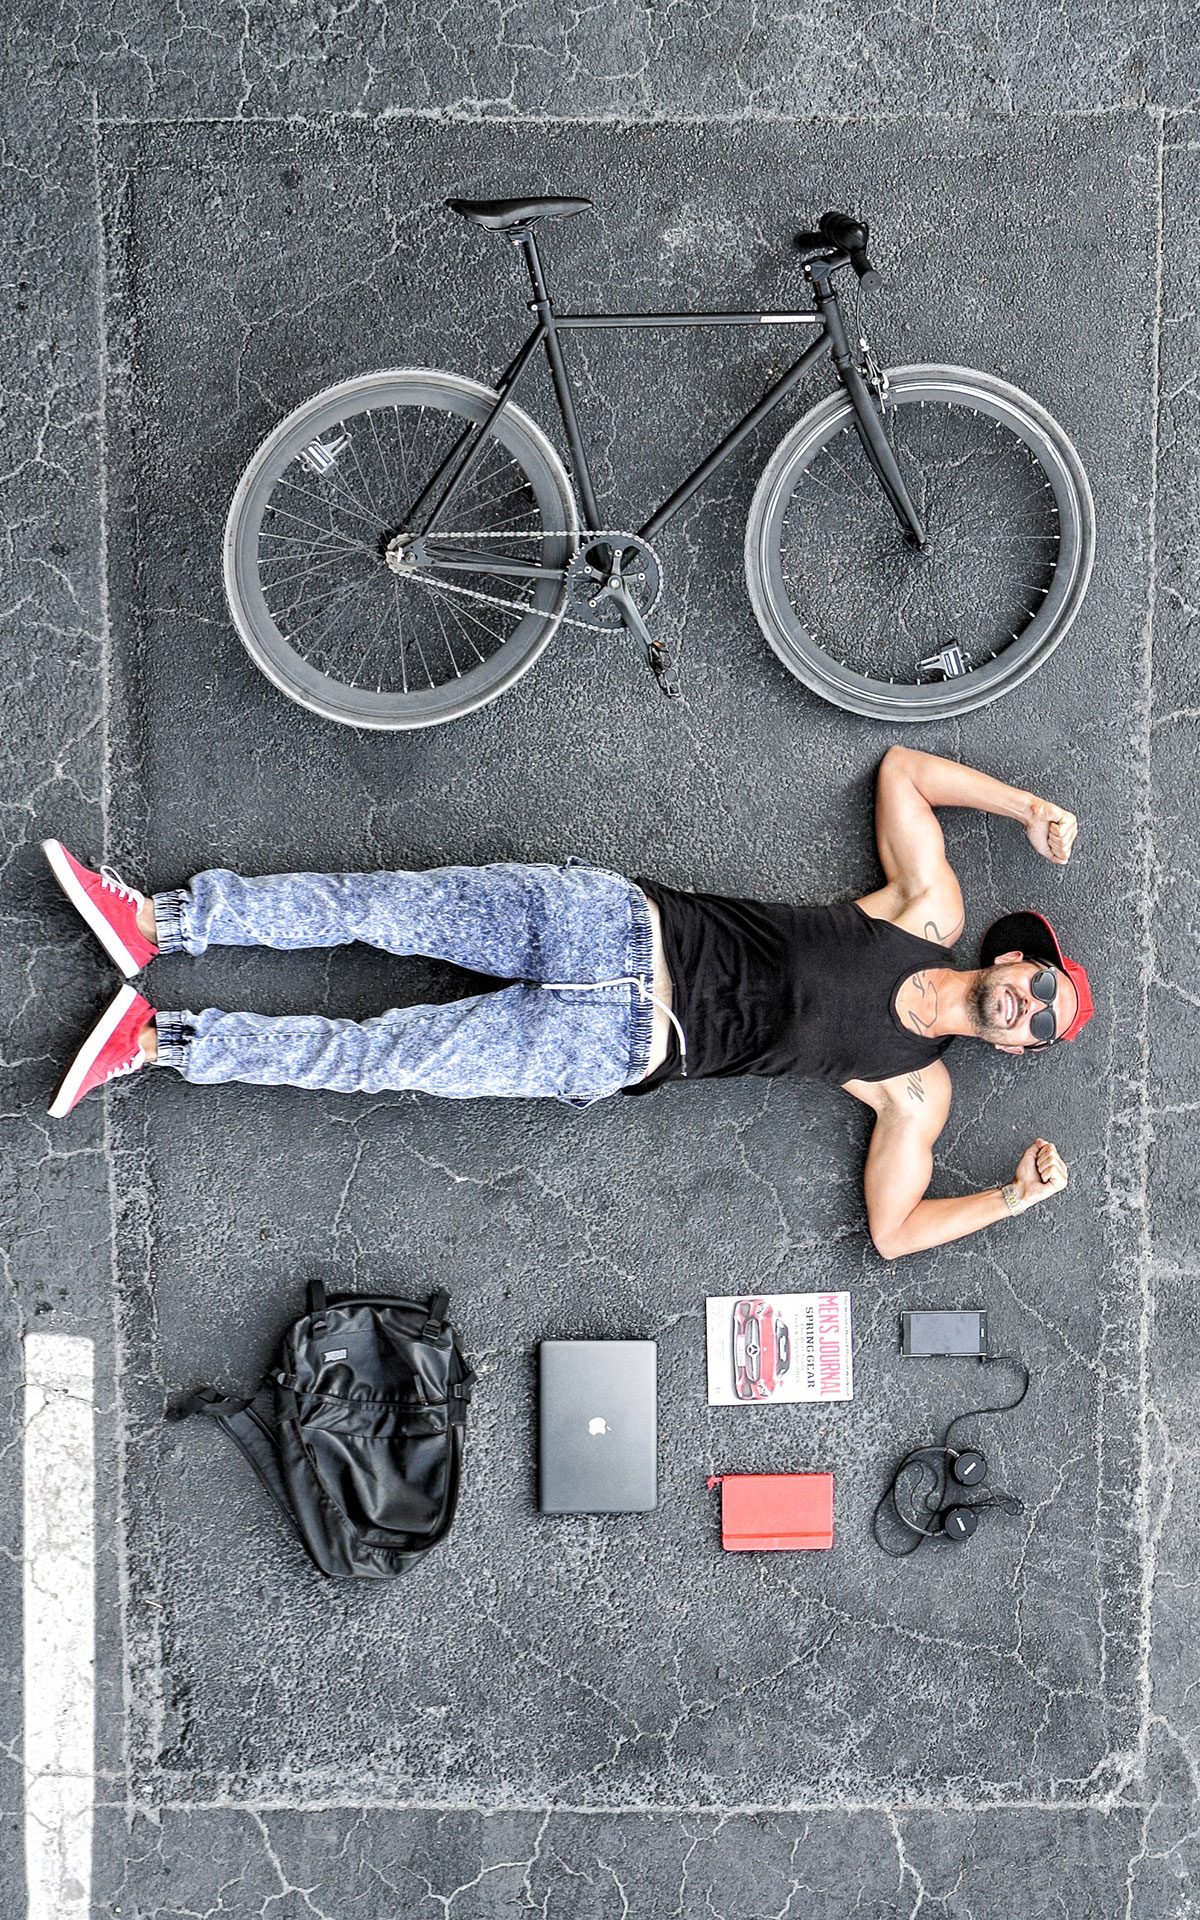 Man and Bike Lie on Concrete